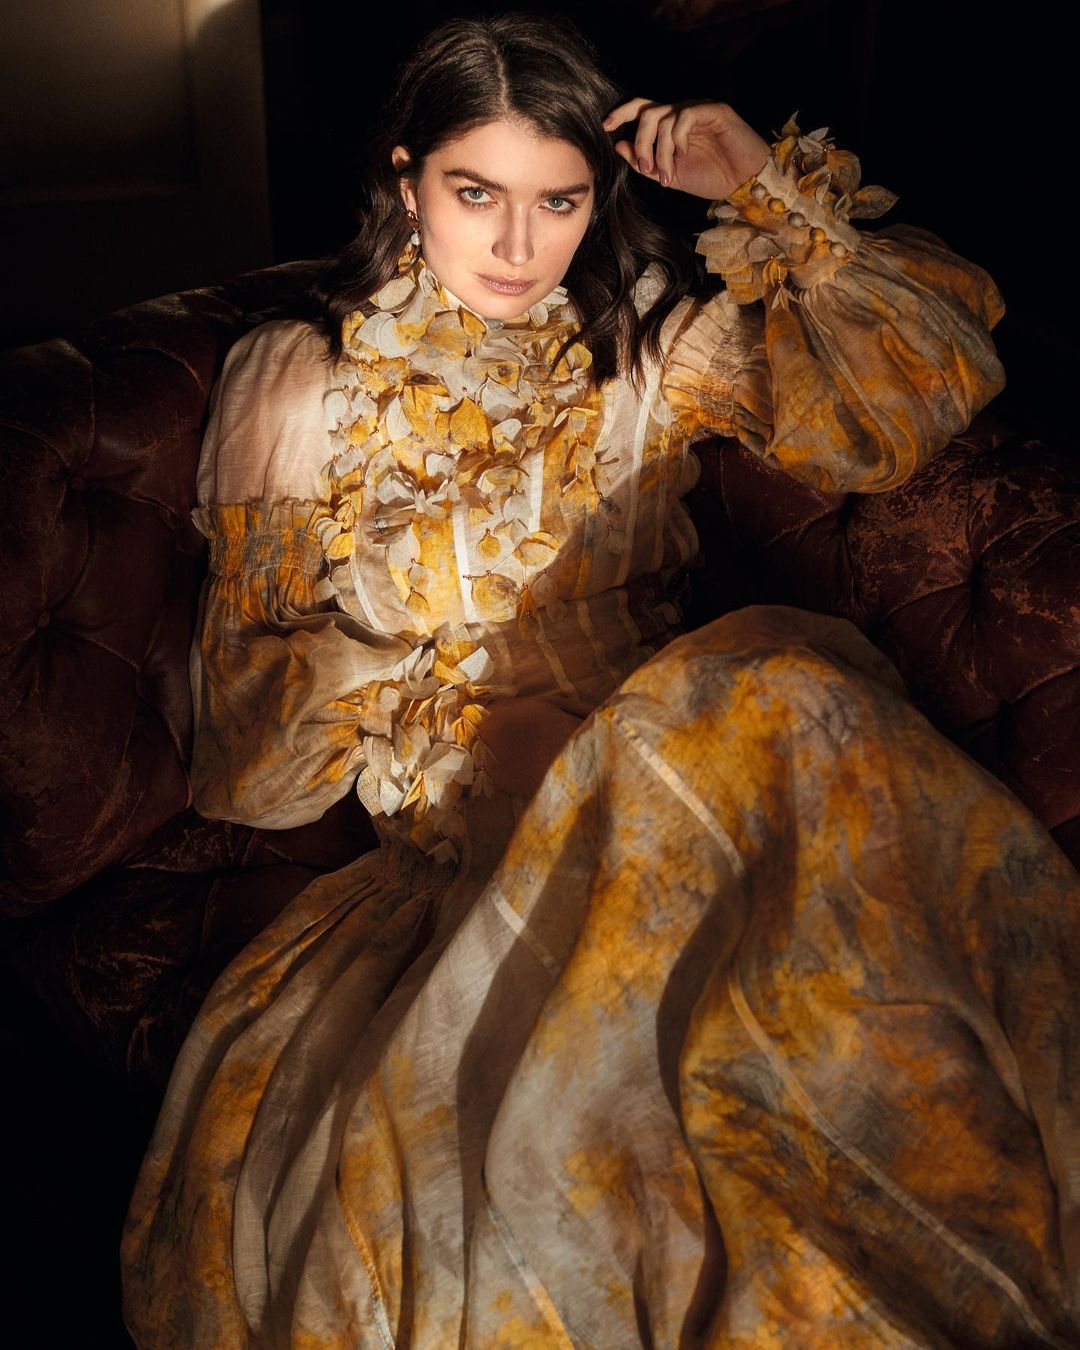 Eve Hewson wears the Botanica Wattle Gown for Town & Country